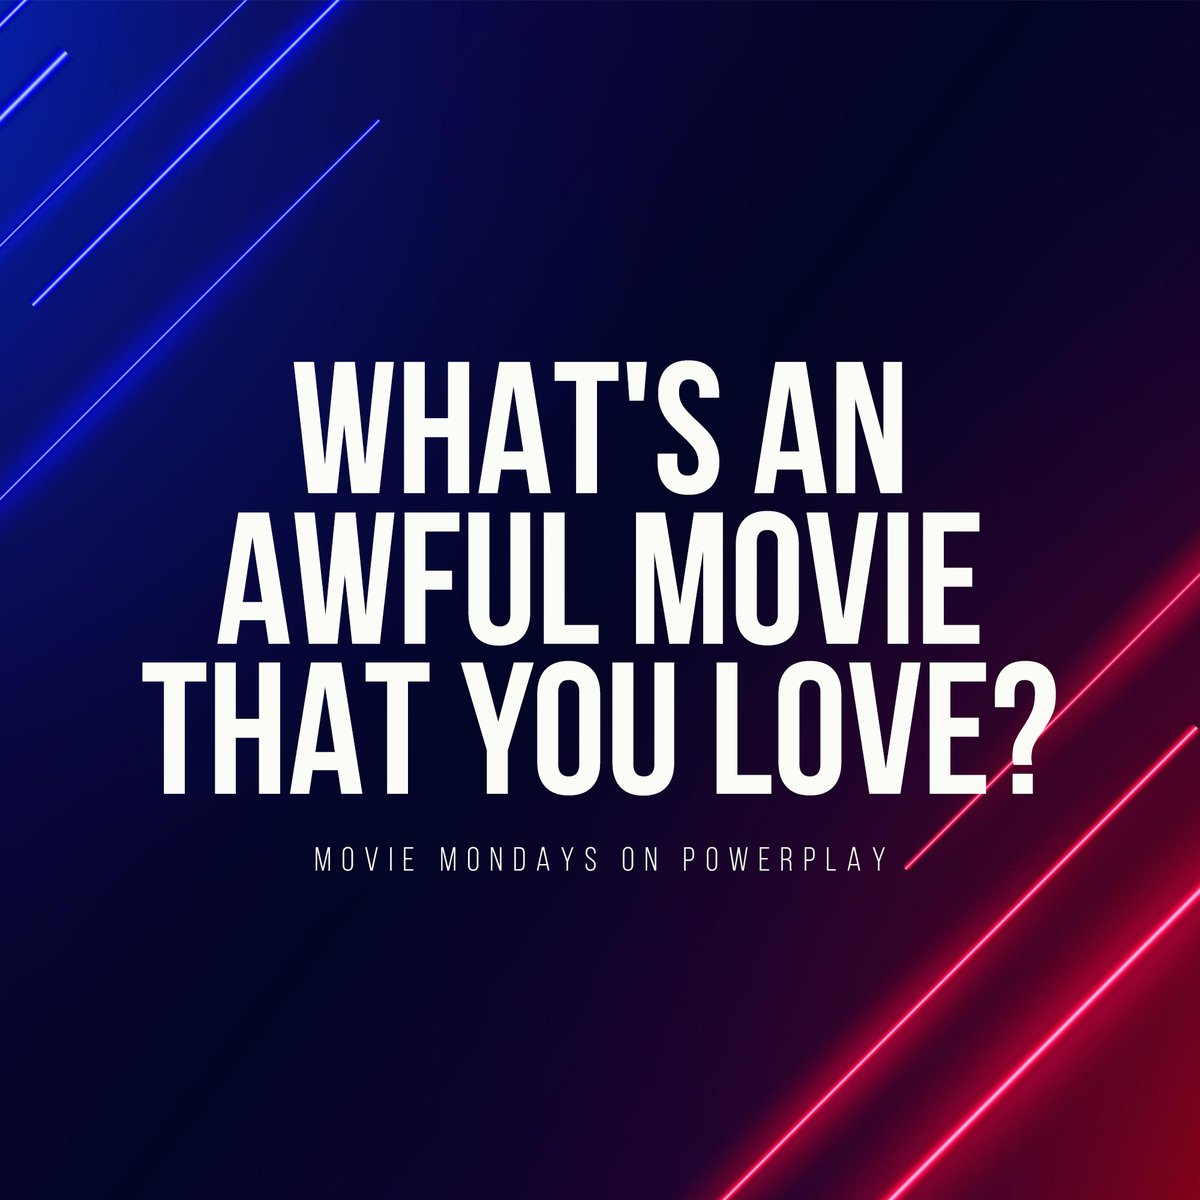 It's #MovieMondays on #PowerPlay with davidriley_! 🤓🎞  We've got awesome pick-me-up hits and all the #GoodVibes on tap 'til 7 PM 👌🏼  Quote RT or Reply your answers to our question below 👇🏼👇🏼👇🏼